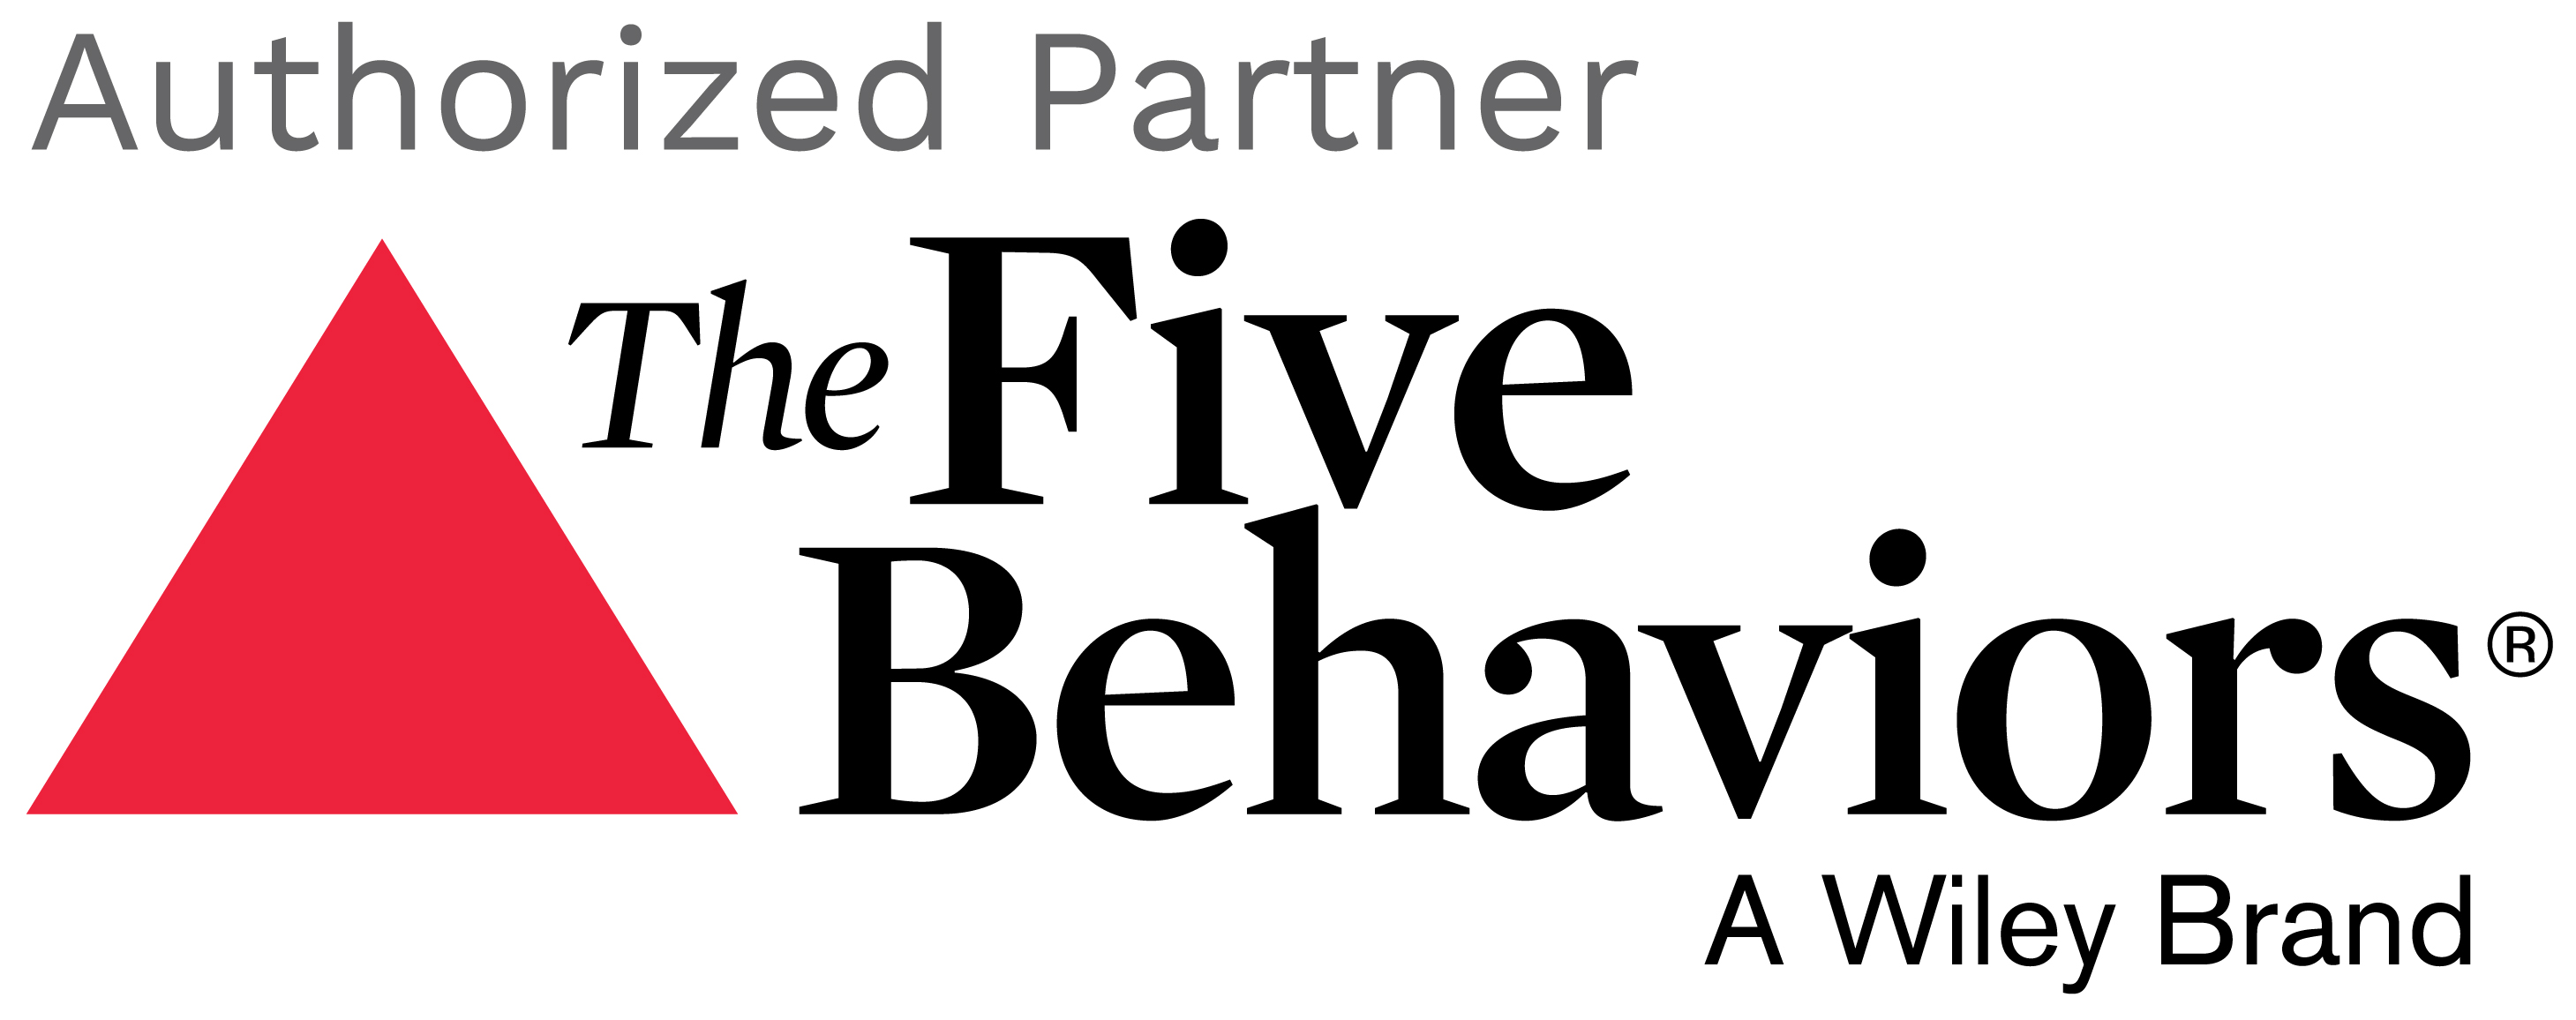 The Five Behaviors Authorized Partner